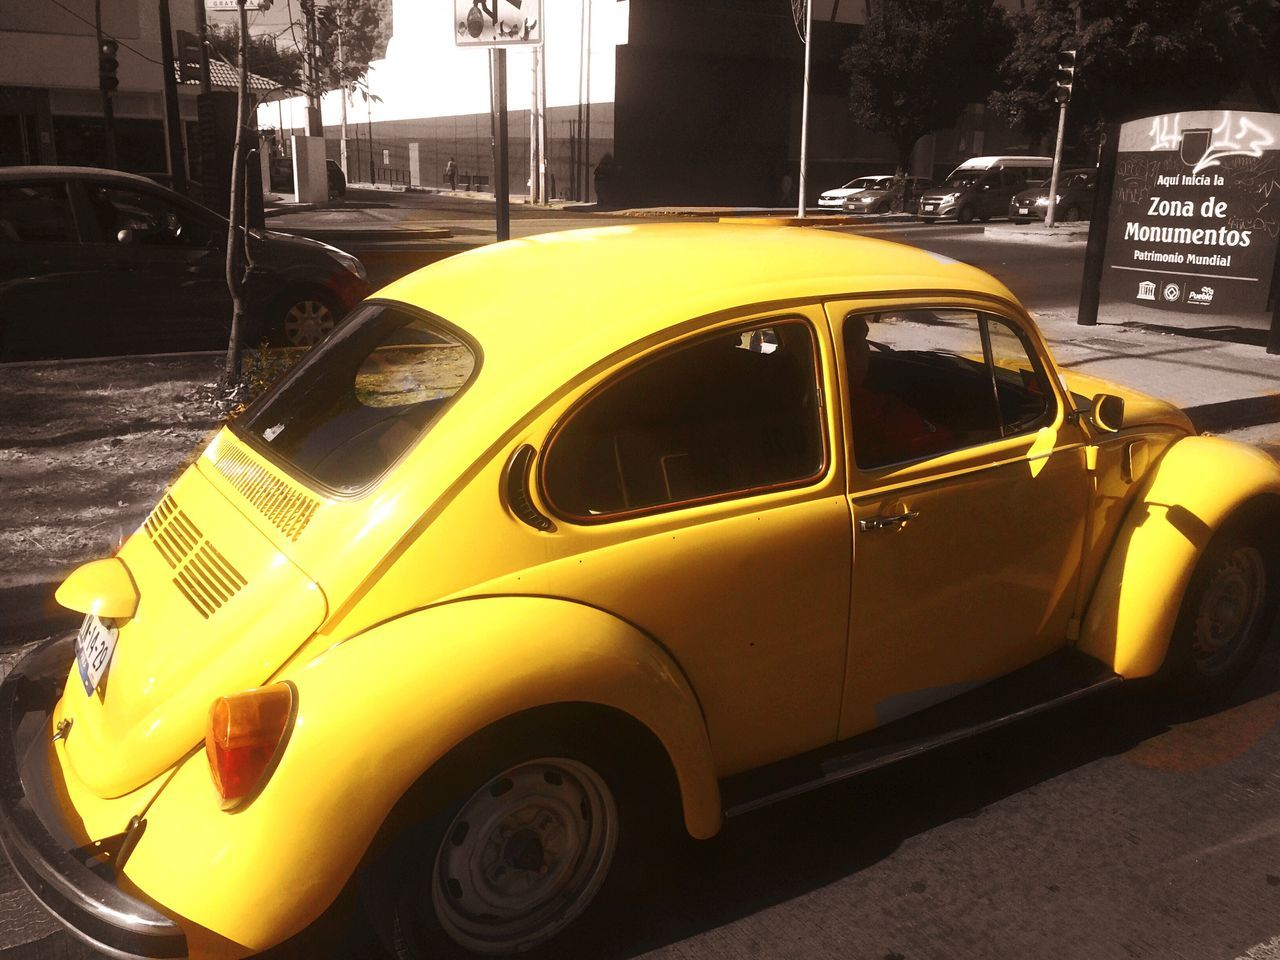 Volkswagen Volkswagen Beetle Yellow Car Cars Vehicle Classic Car Classic Cars Land Vehicle Transportation Mexico Puebla Puebla De Zaragoza Vocho Vochomania Eye4photography  EyeEm Gallery EyeEm Best Shots